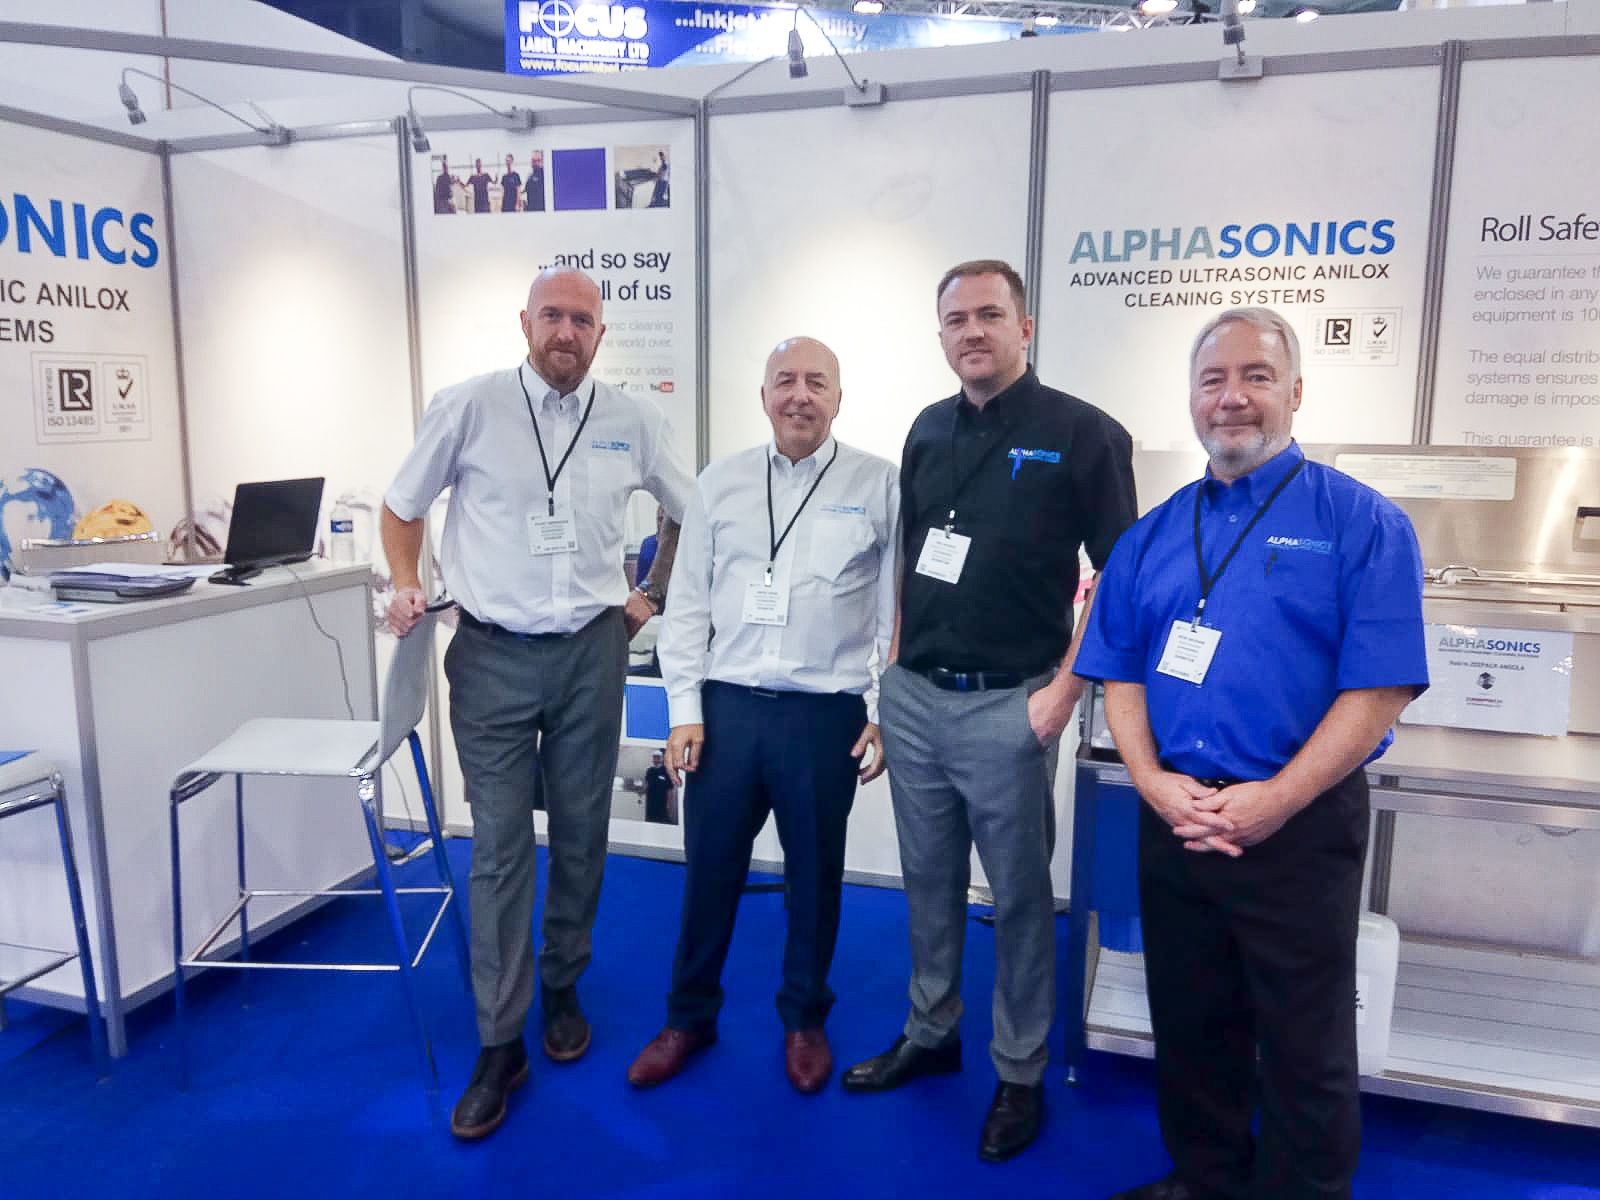 The Alphasonics UCS team exhibiting at Labelexpo 2019.